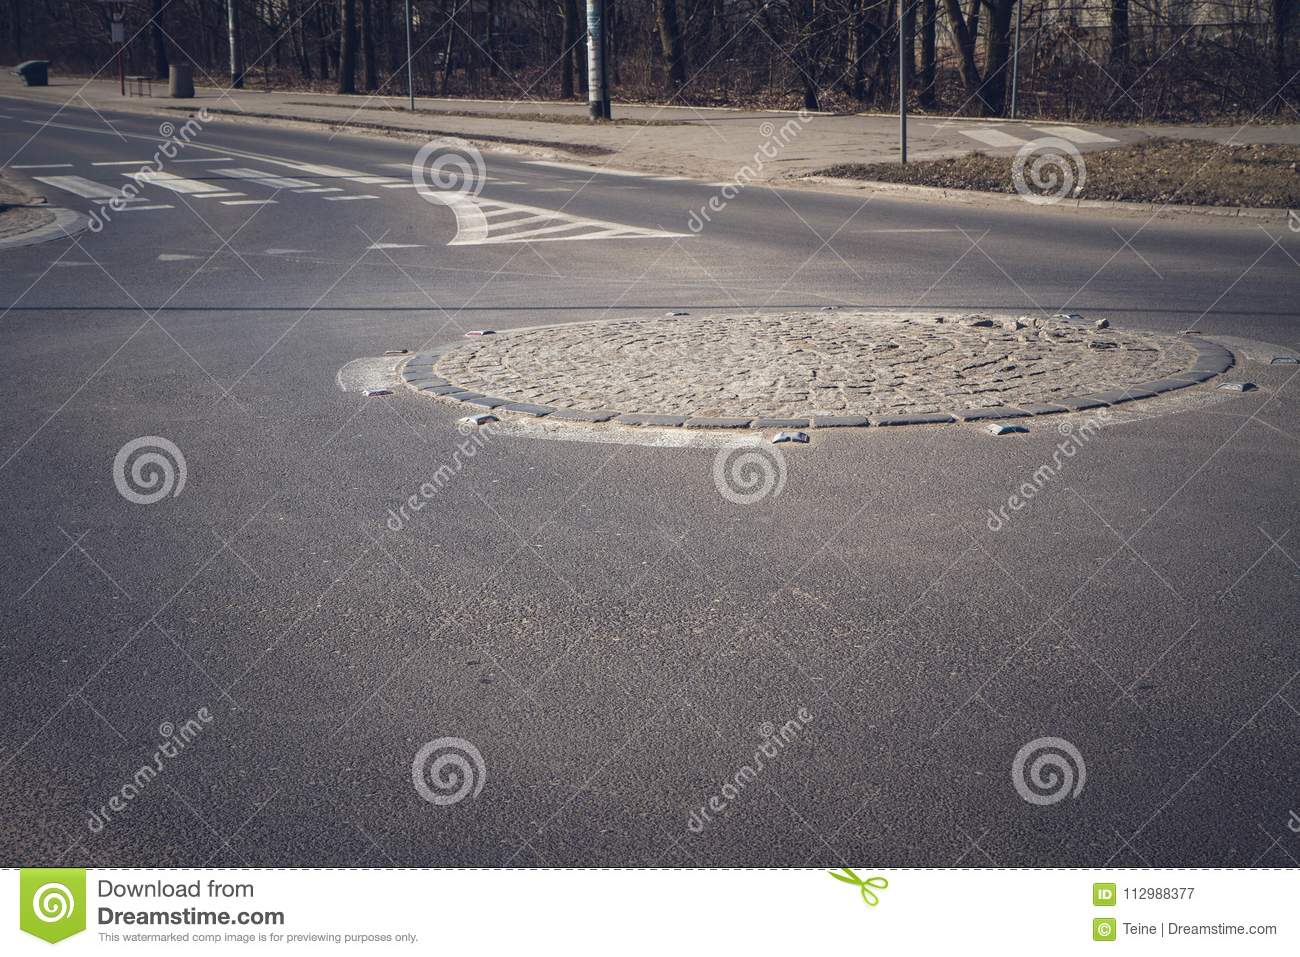 An empty Roundabout